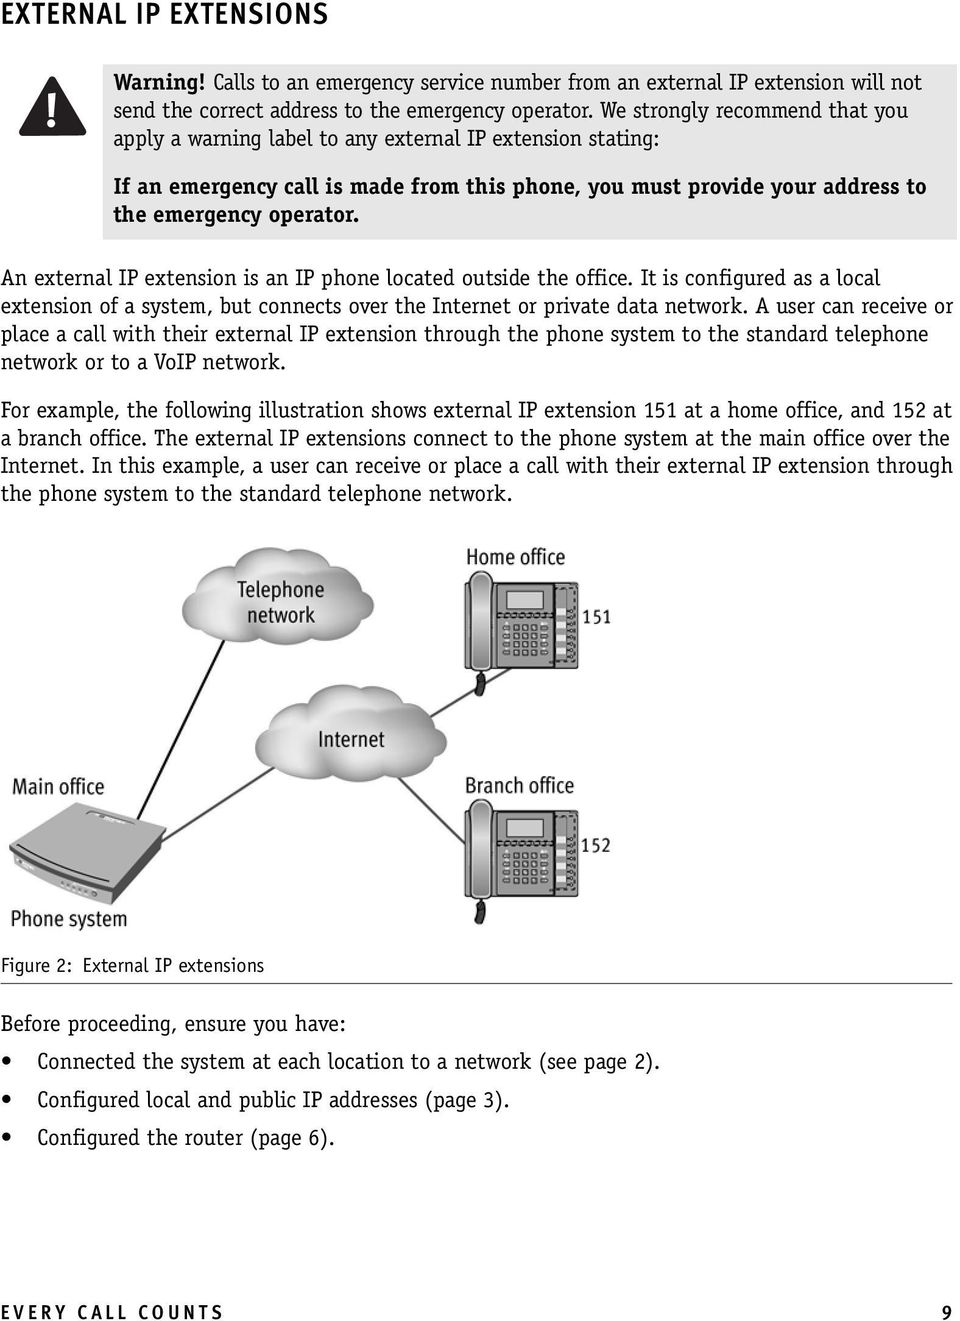 An external IP extension is an IP phone located outside the office. It is configured as a local extension of a system, but connects over the Internet or private data network.